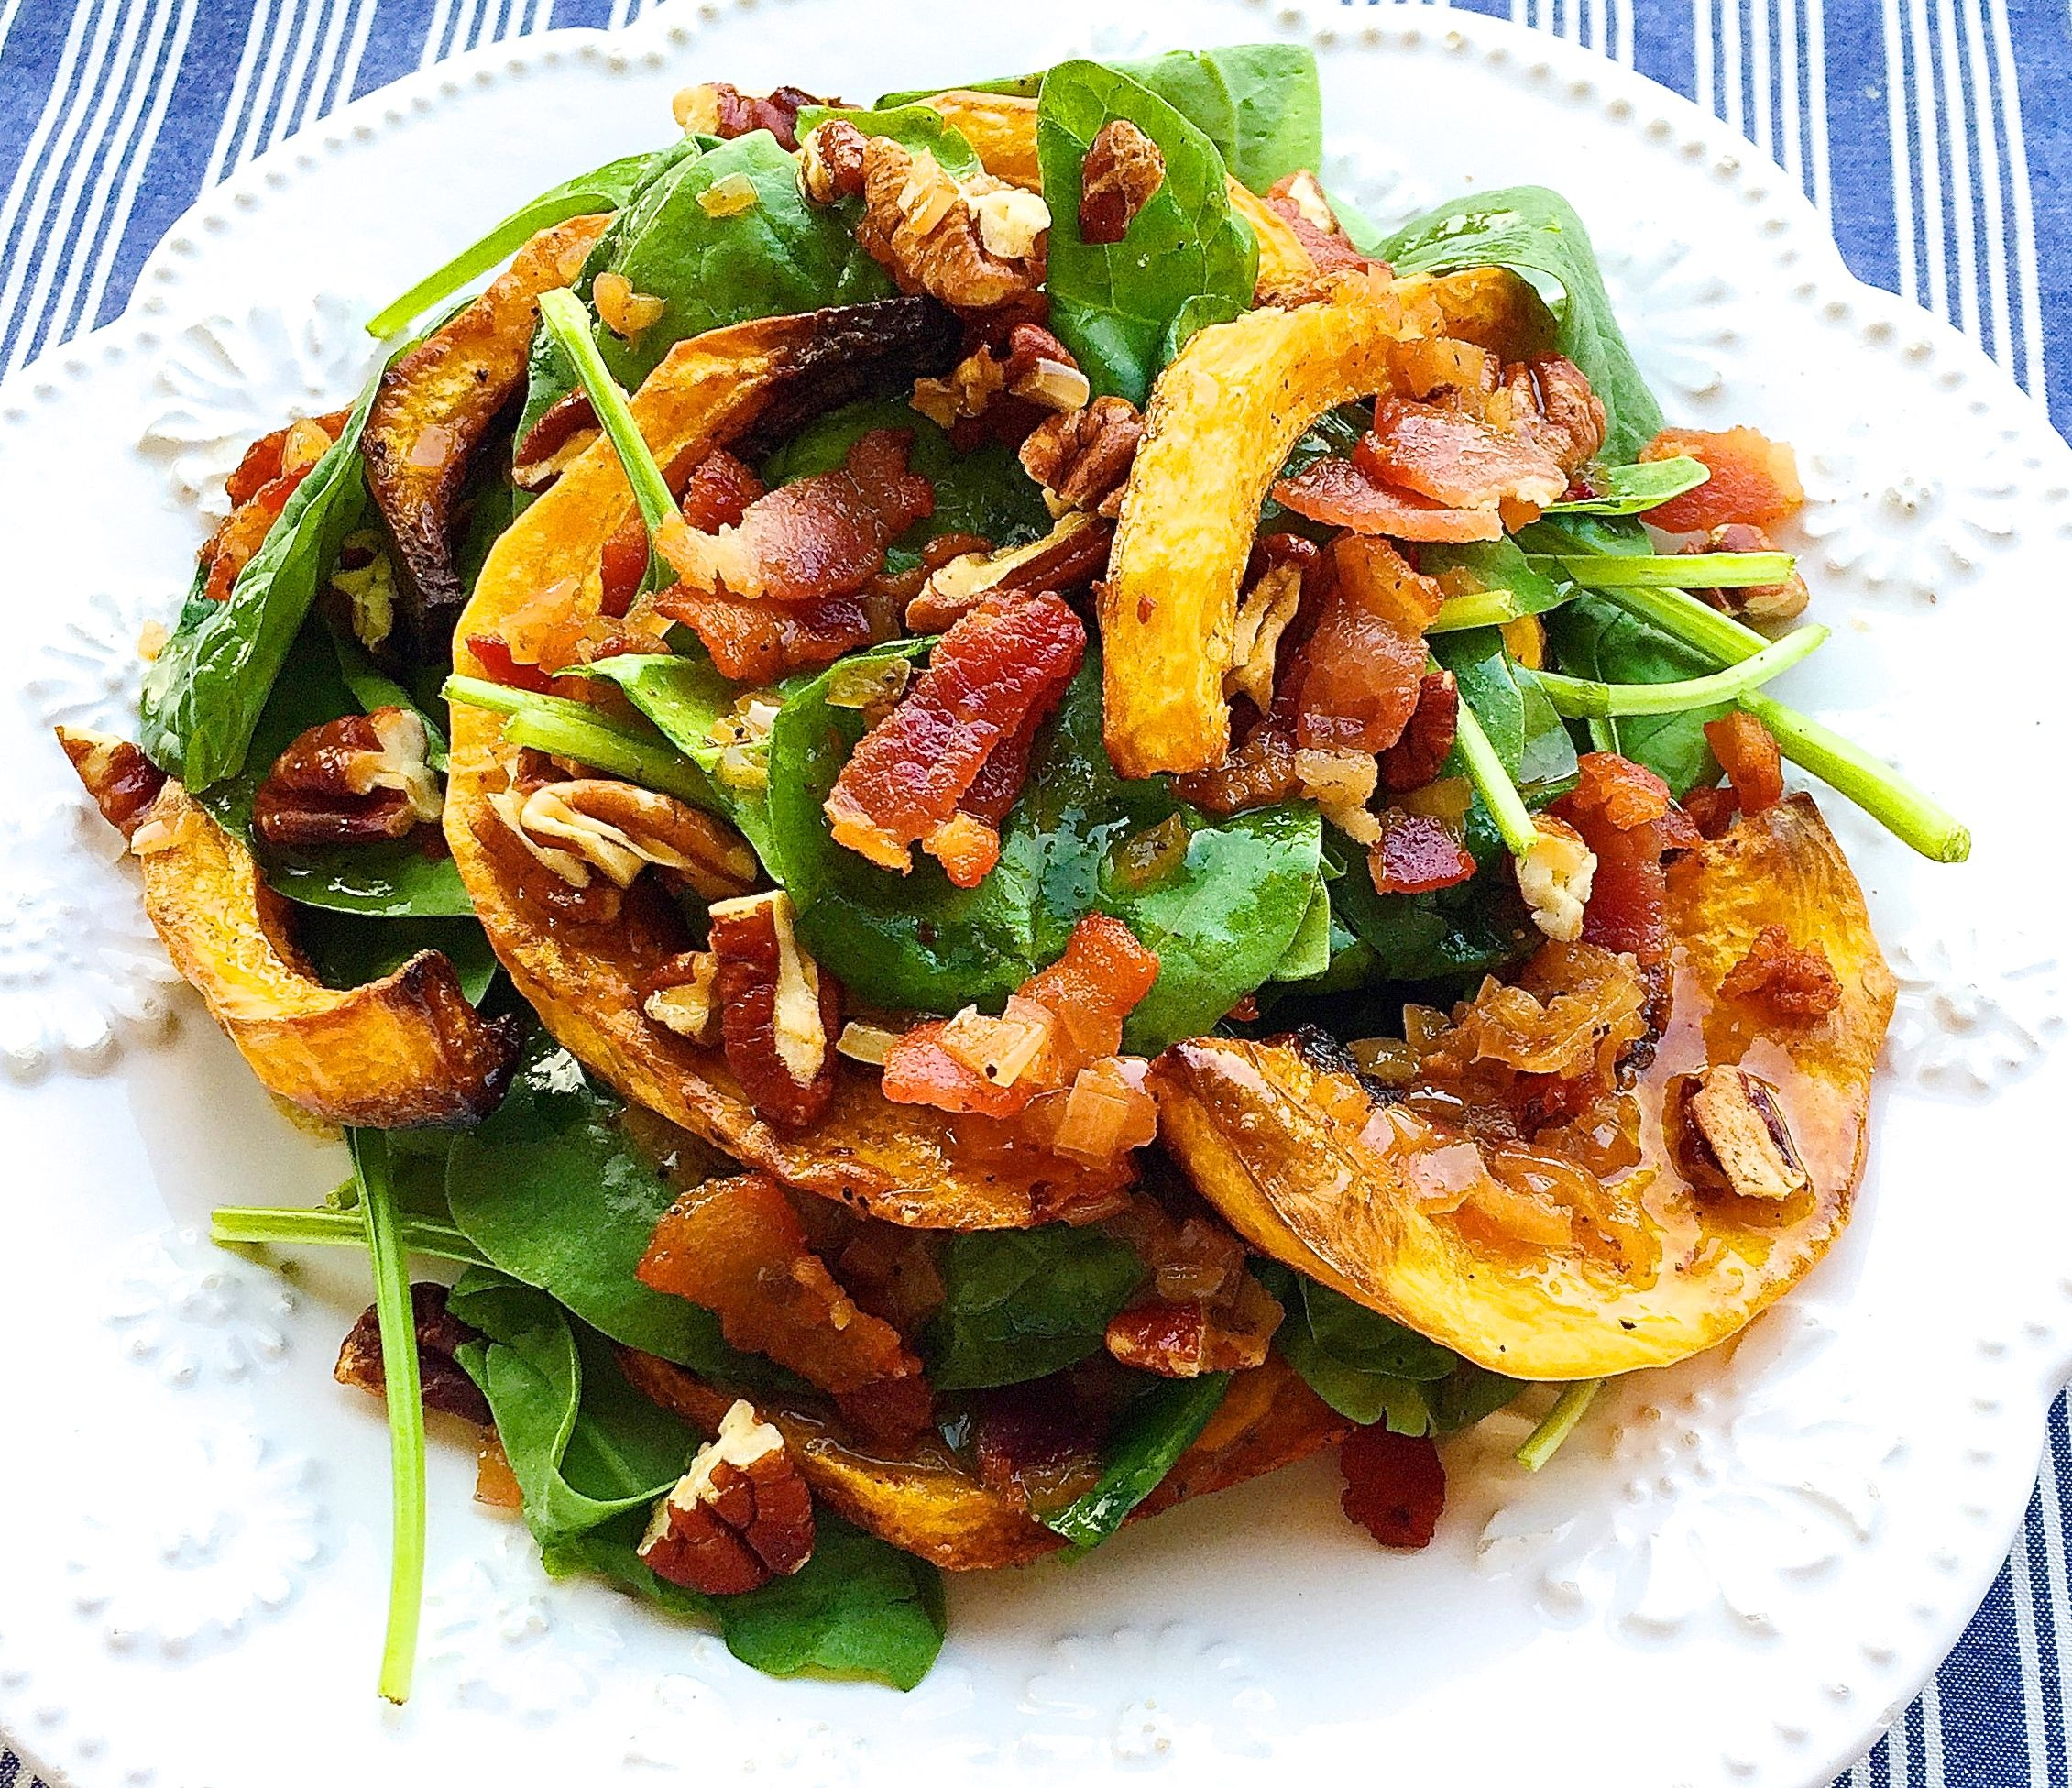 20 best thanksgiving salad recipes easy ideas for holiday salad 20 best thanksgiving salad recipes easy ideas for holiday salad delish forumfinder Image collections